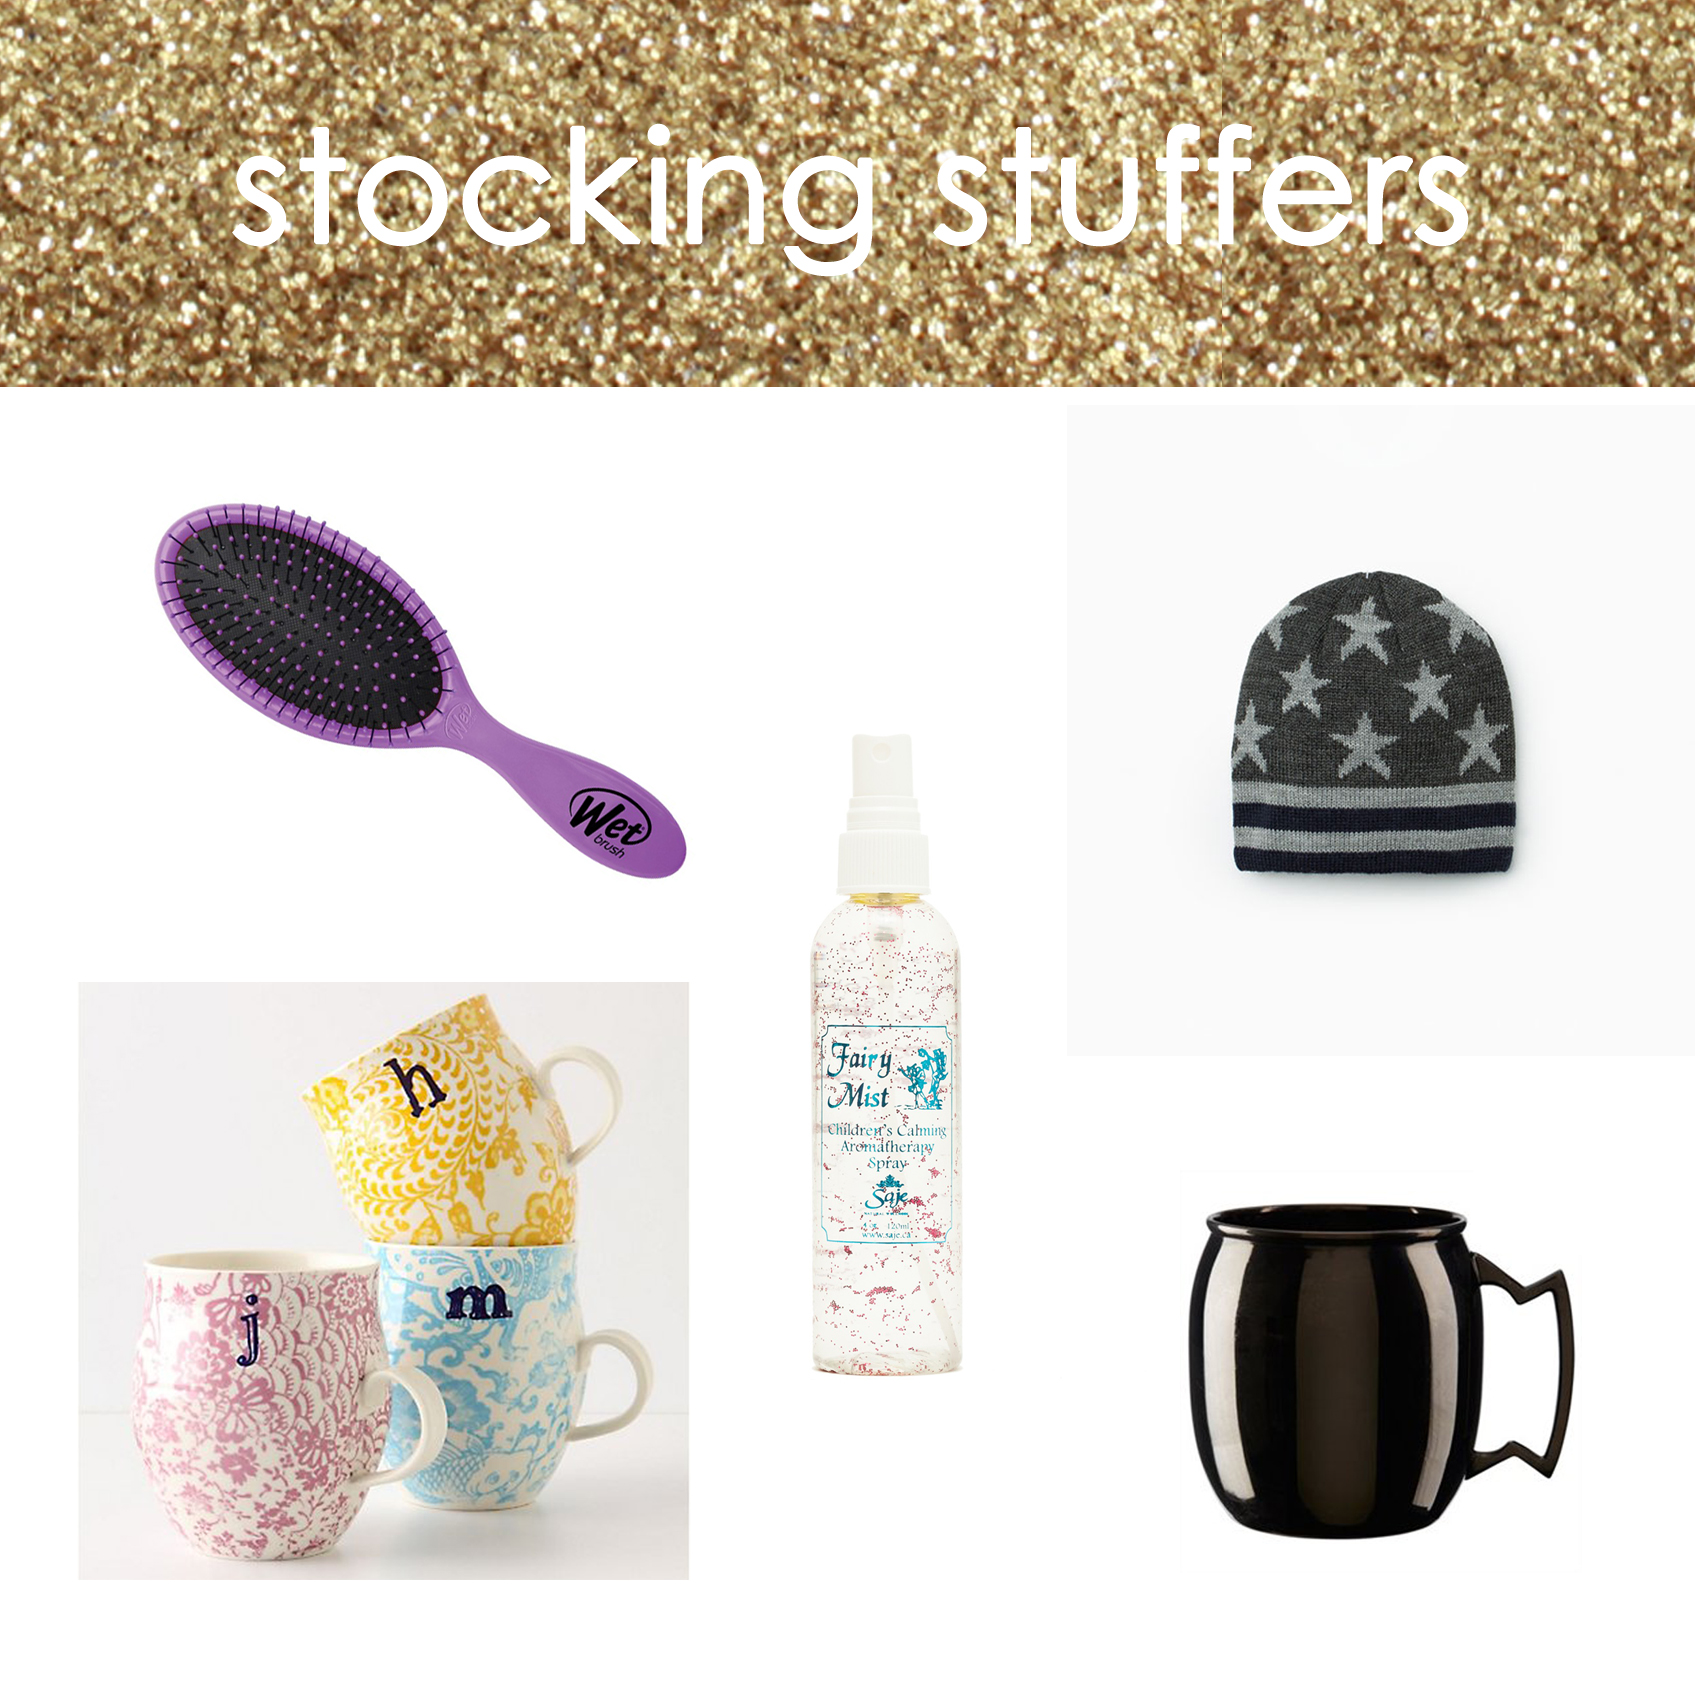 Stocking stuffers - blondewalk